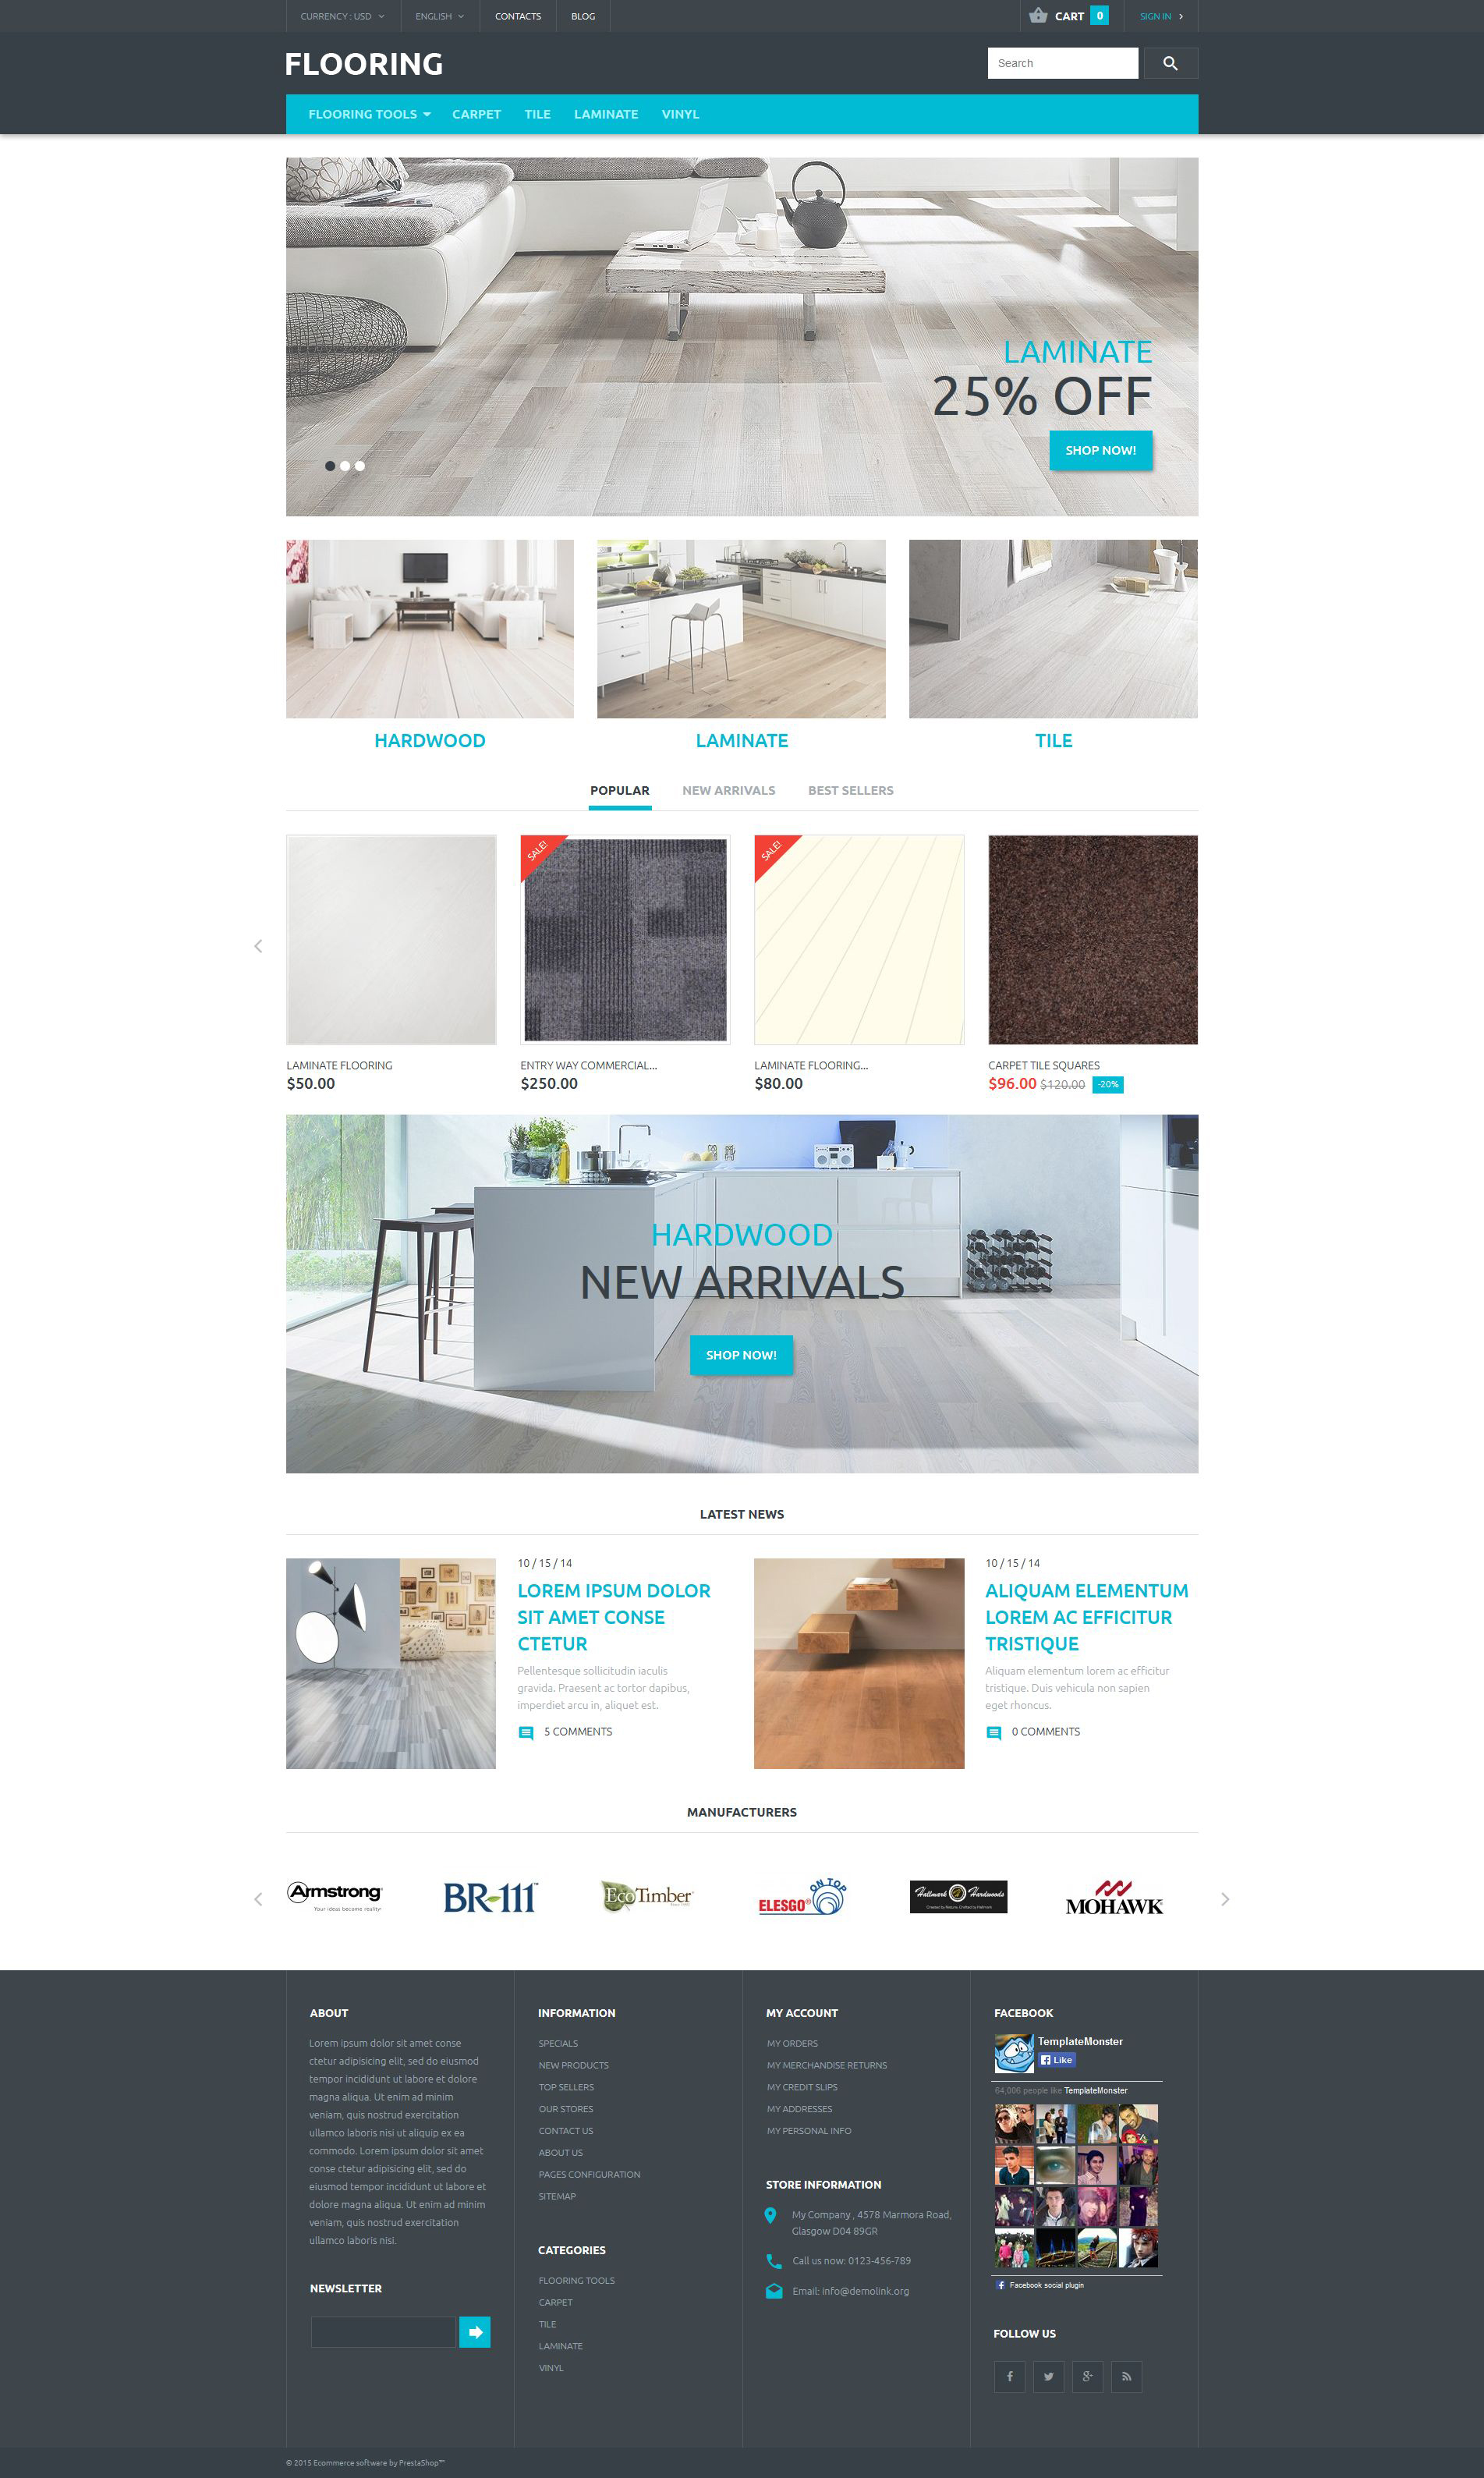 The Flooring Floor PrestaShop Design 53710, one of the best PrestaShop themes of its kind (interior & furniture, most popular), also known as flooring floor PrestaShop template, flooring online store PrestaShop template, shop PrestaShop template, laminat PrestaShop template, wood PrestaShop template, carpet PrestaShop template, area PrestaShop template, rugs PrestaShop template, cork PrestaShop template, overhaul PrestaShop template, maintenance PrestaShop template, shopping cart and related with flooring floor, flooring online store, shop, laminat, wood, carpet, area, rugs, cork, overhaul, maintenance, shopping cart, etc.